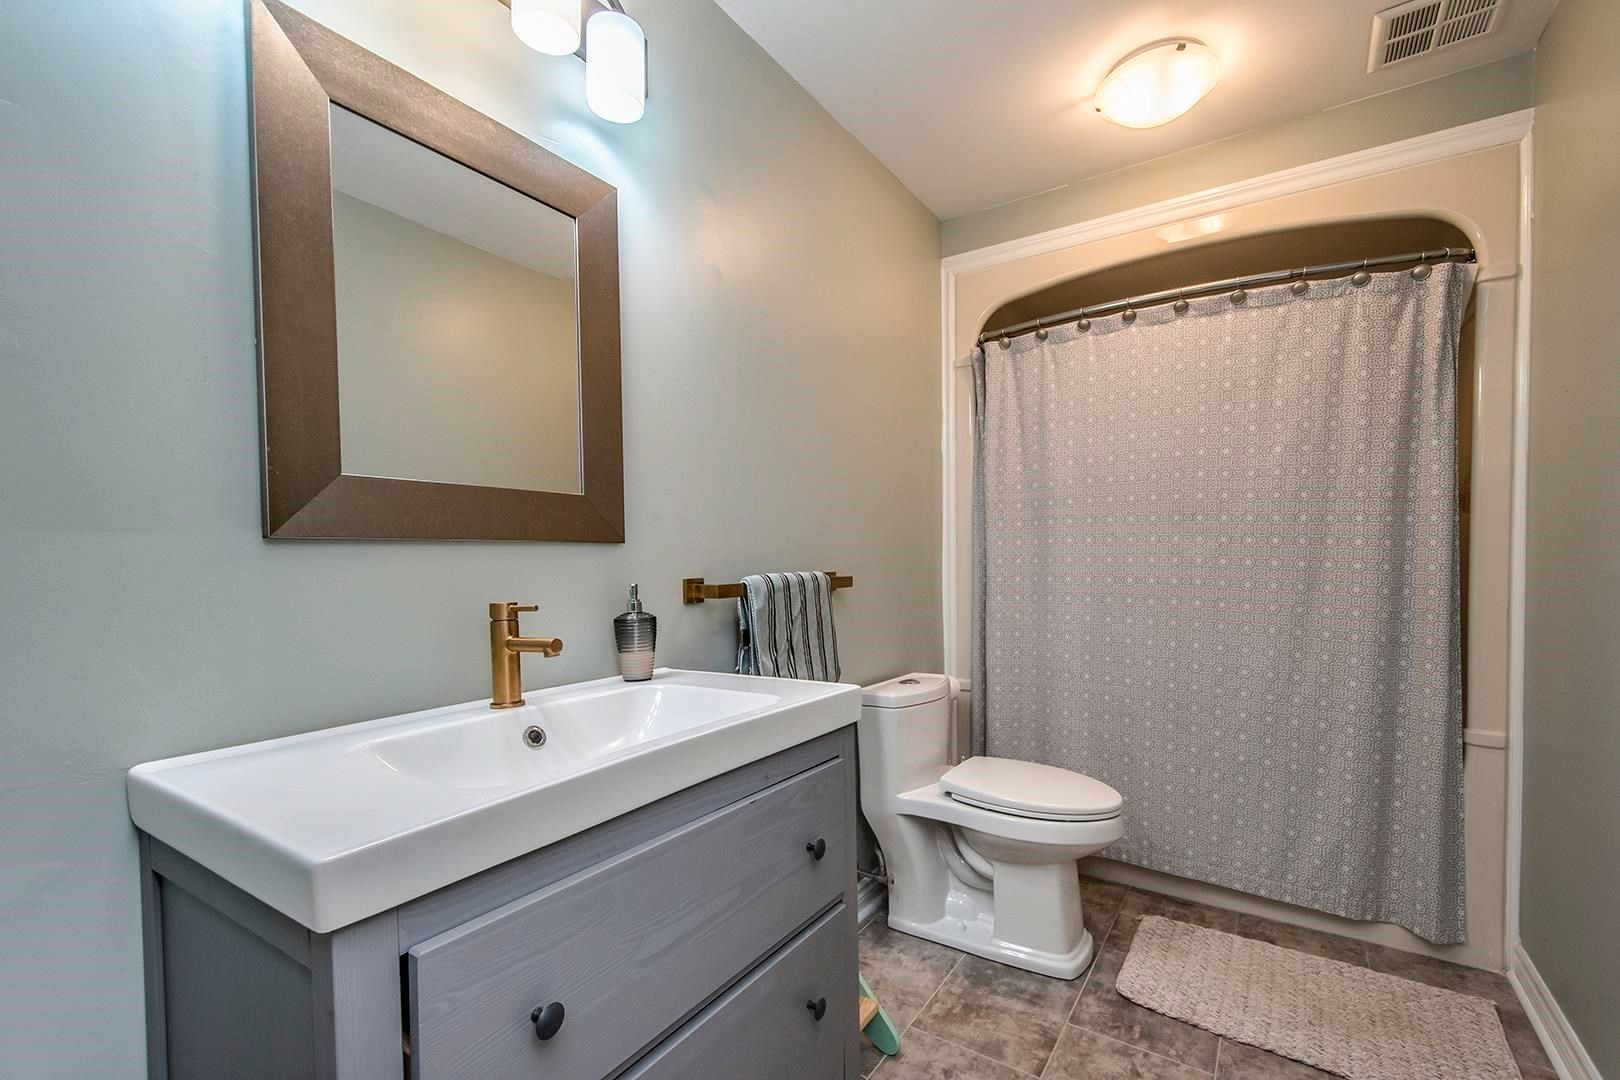 Photo 23: Photos: 64 Roy Crescent in Bedford: 20-Bedford Residential for sale (Halifax-Dartmouth)  : MLS®# 202110846